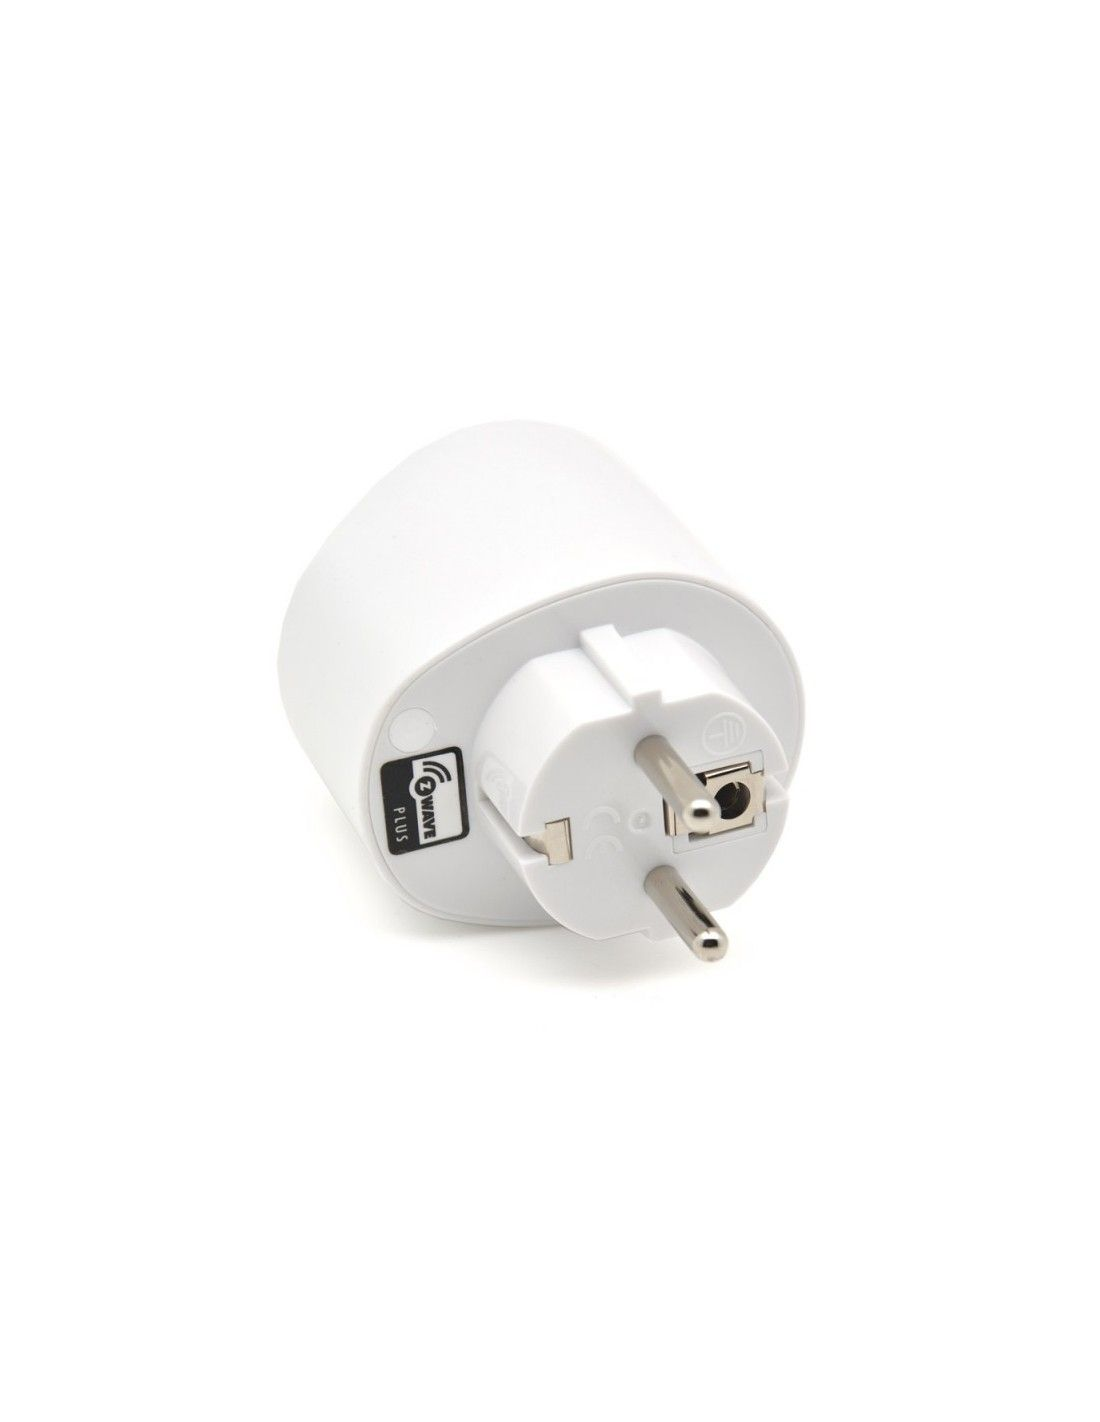 Swiid Z Wave Plus Remote Controlled Adapter Plug